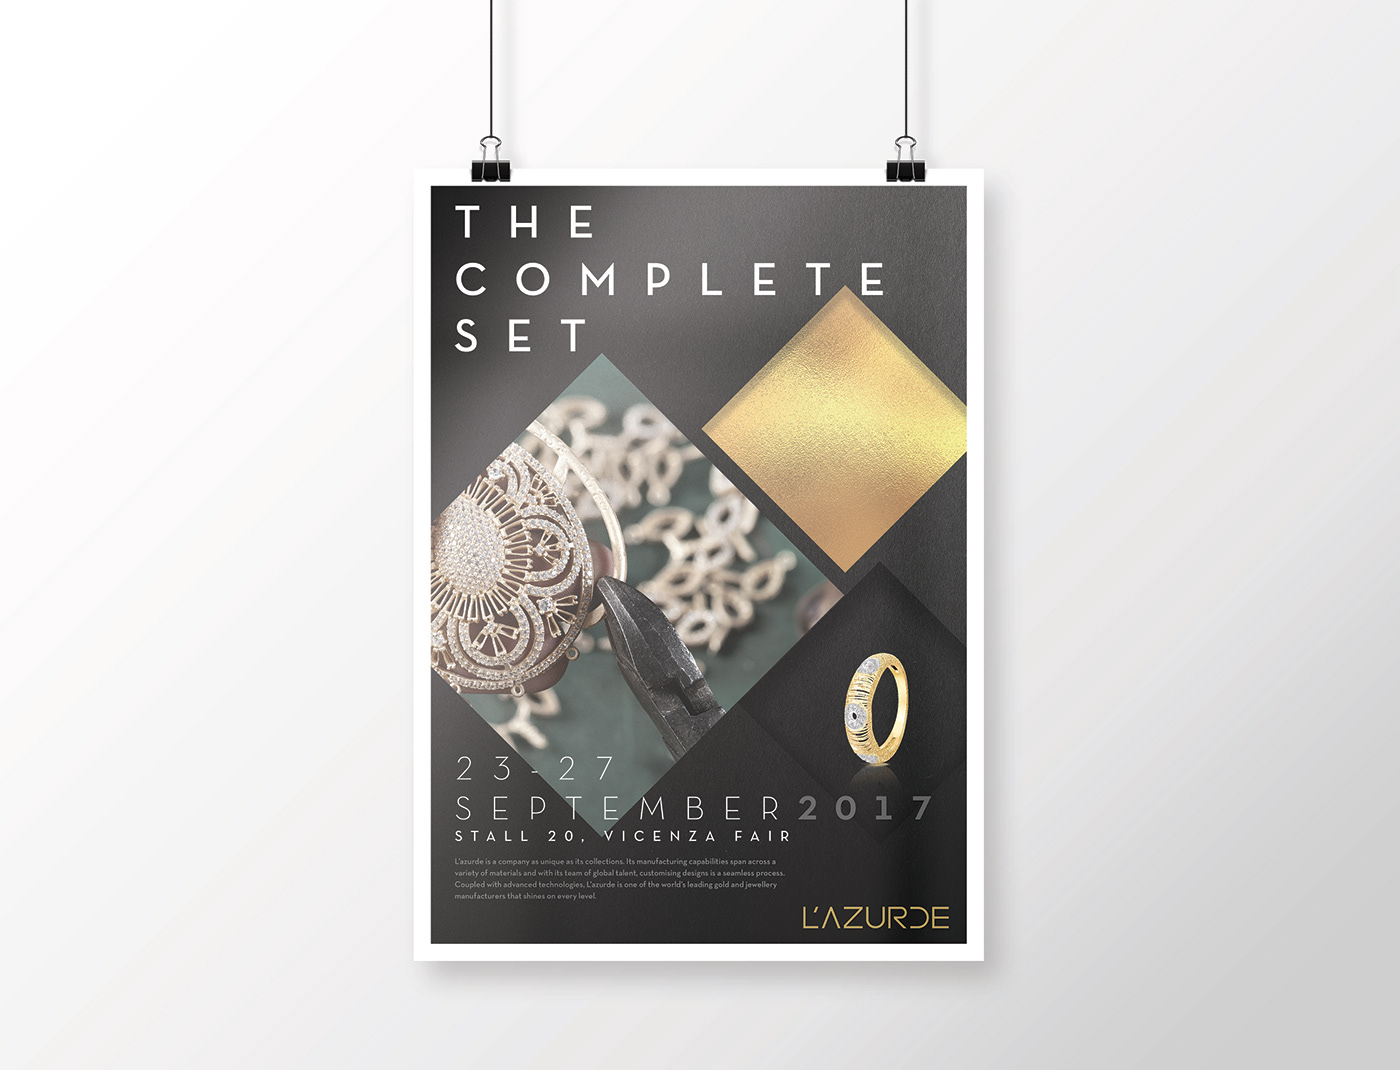 Exhibition Stall Posters : L azurde vicenzaoro exhibition poster on behance